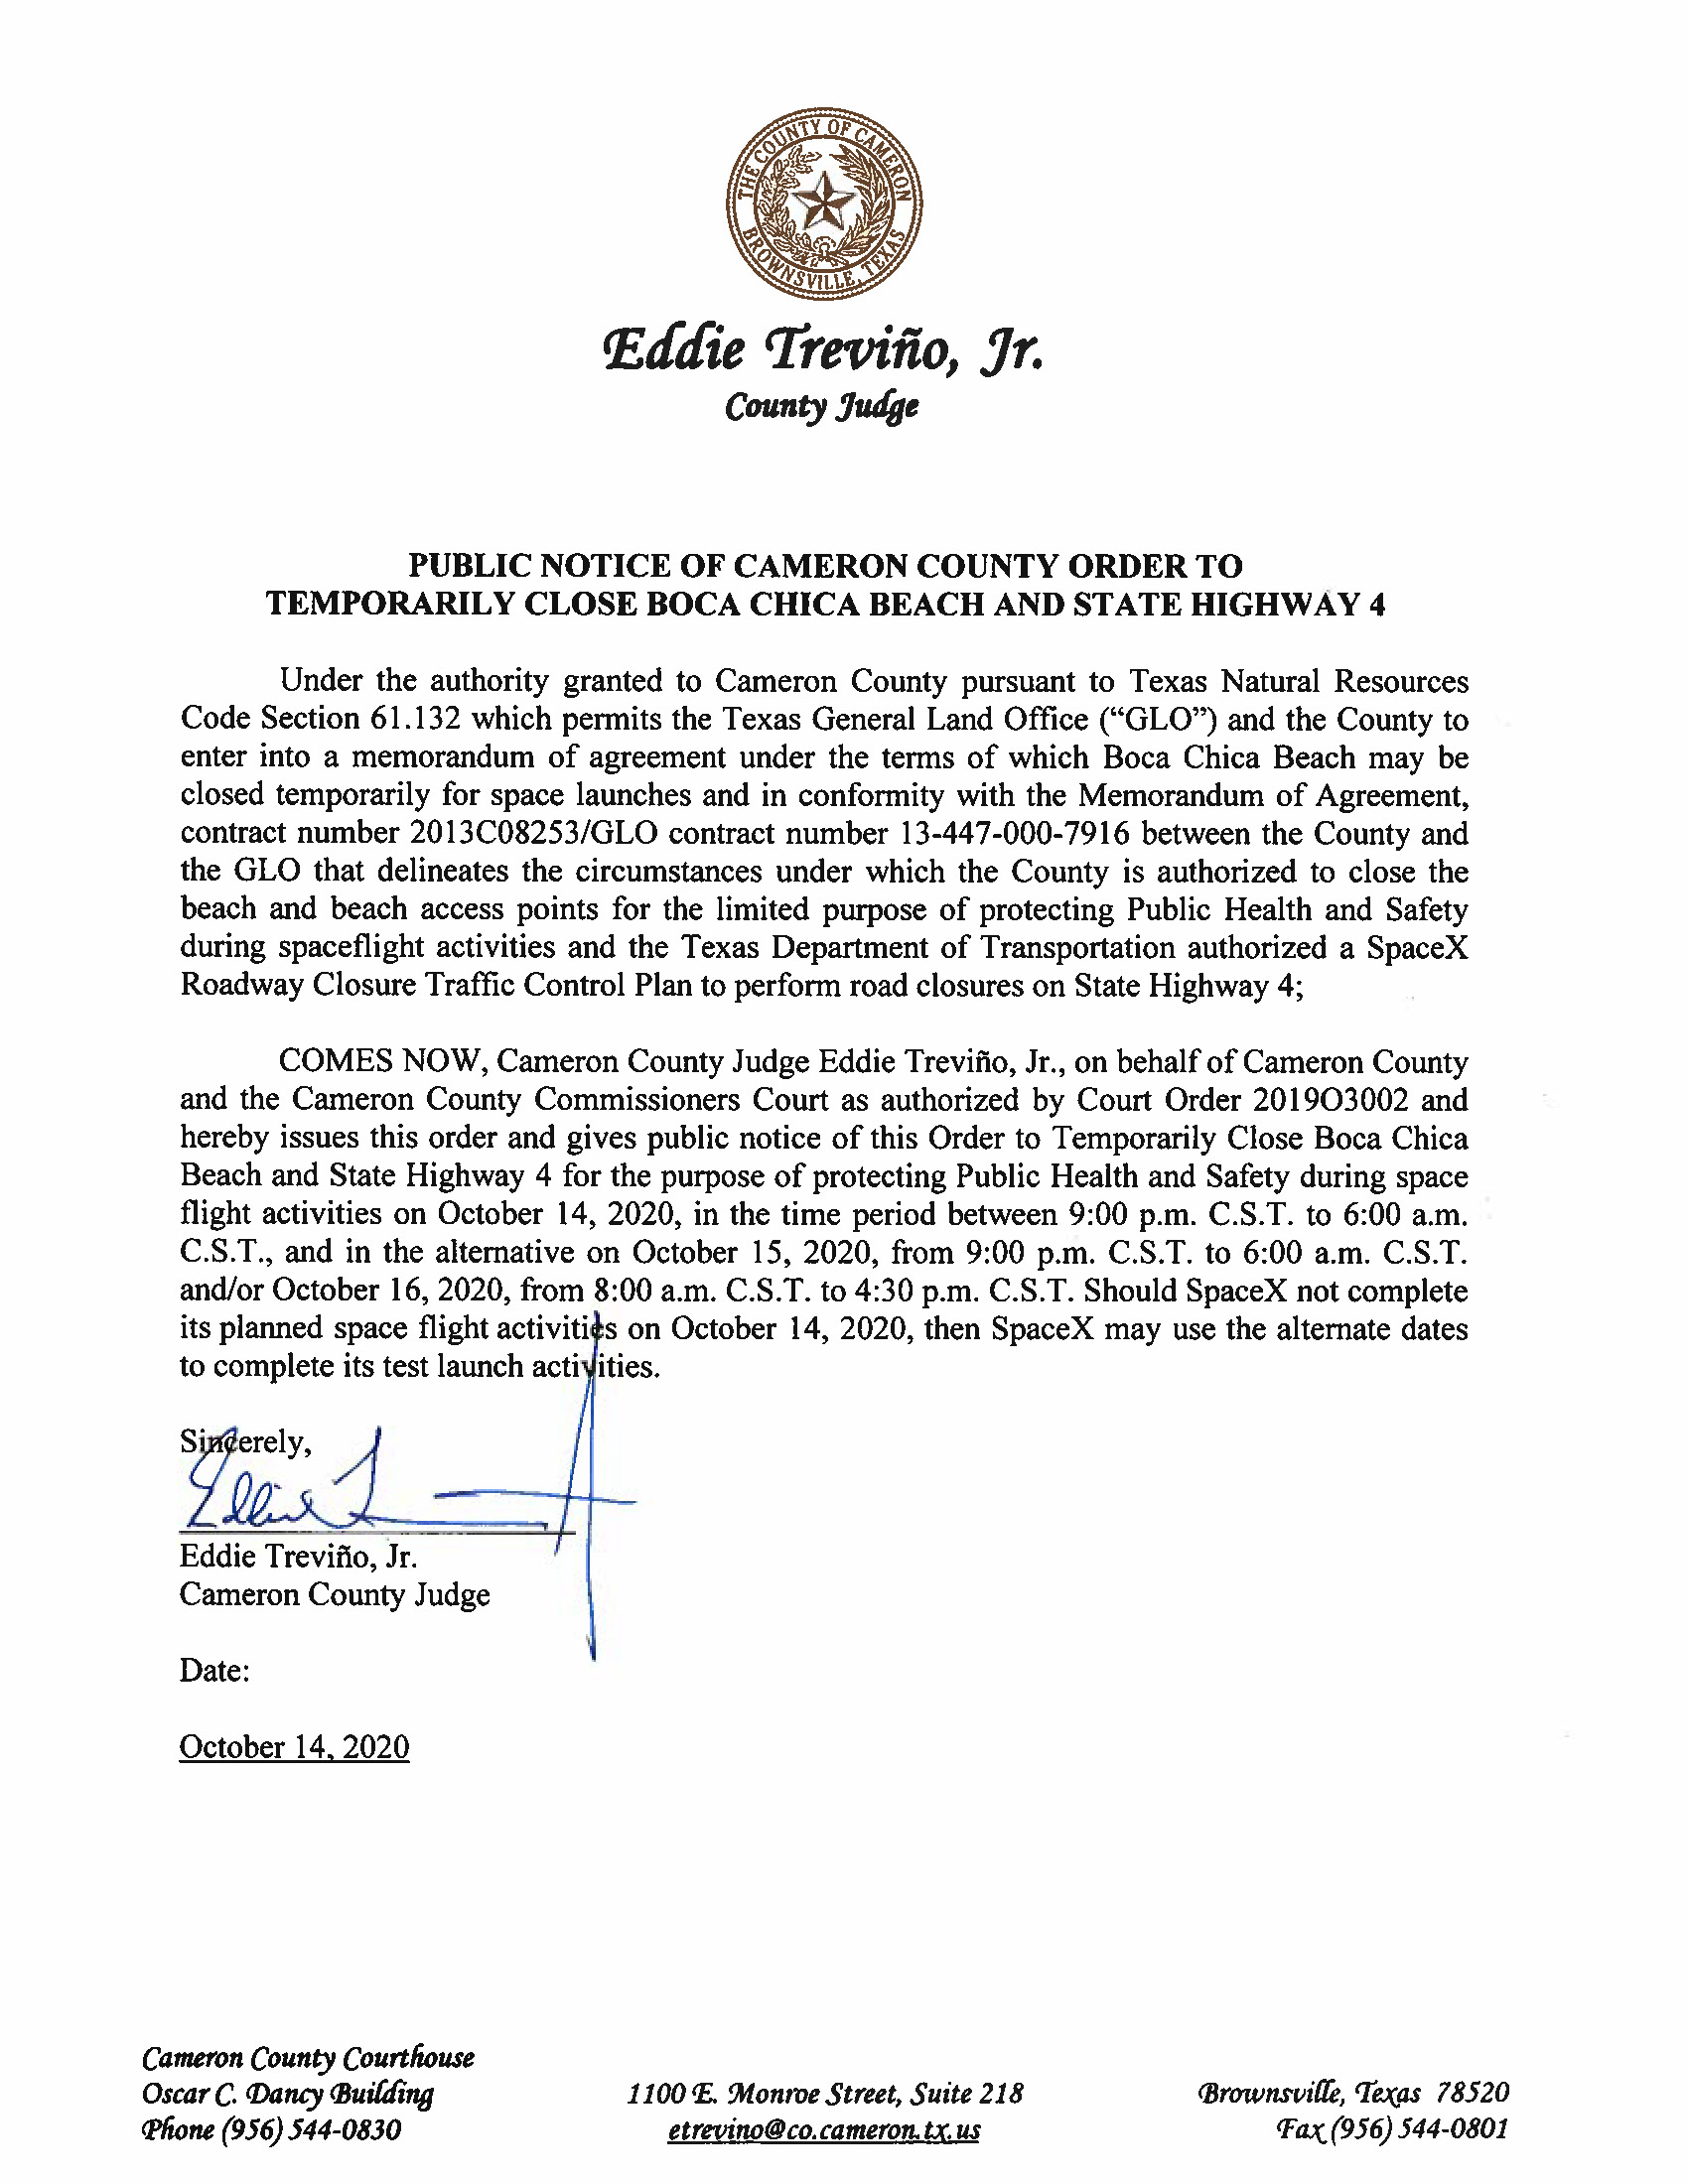 PUBLIC NOTICE OF CAMERON COUNTY ORDER TO TEMP. BEACH CLOSURE AND HWY.10.14.20 Page 1